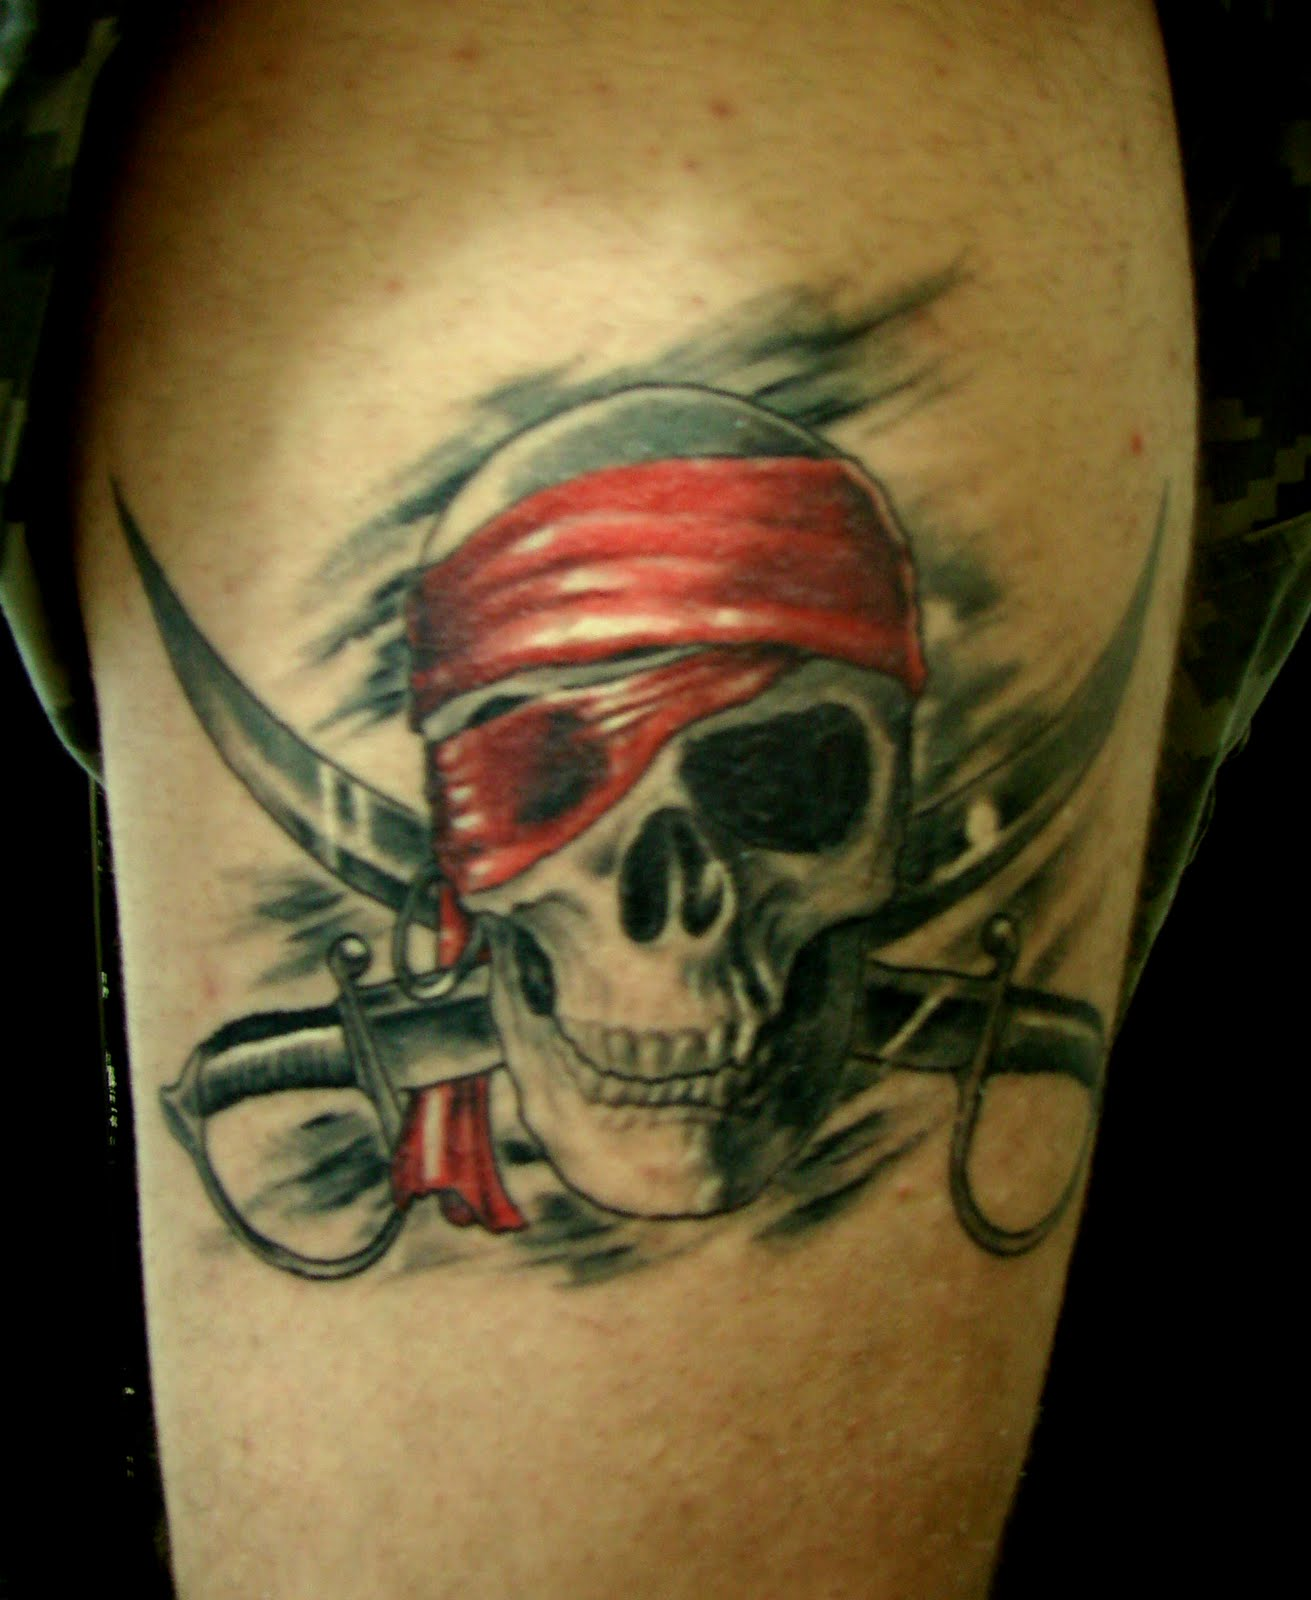 REIS DA TATTOO: CAVEIRA PIRATA